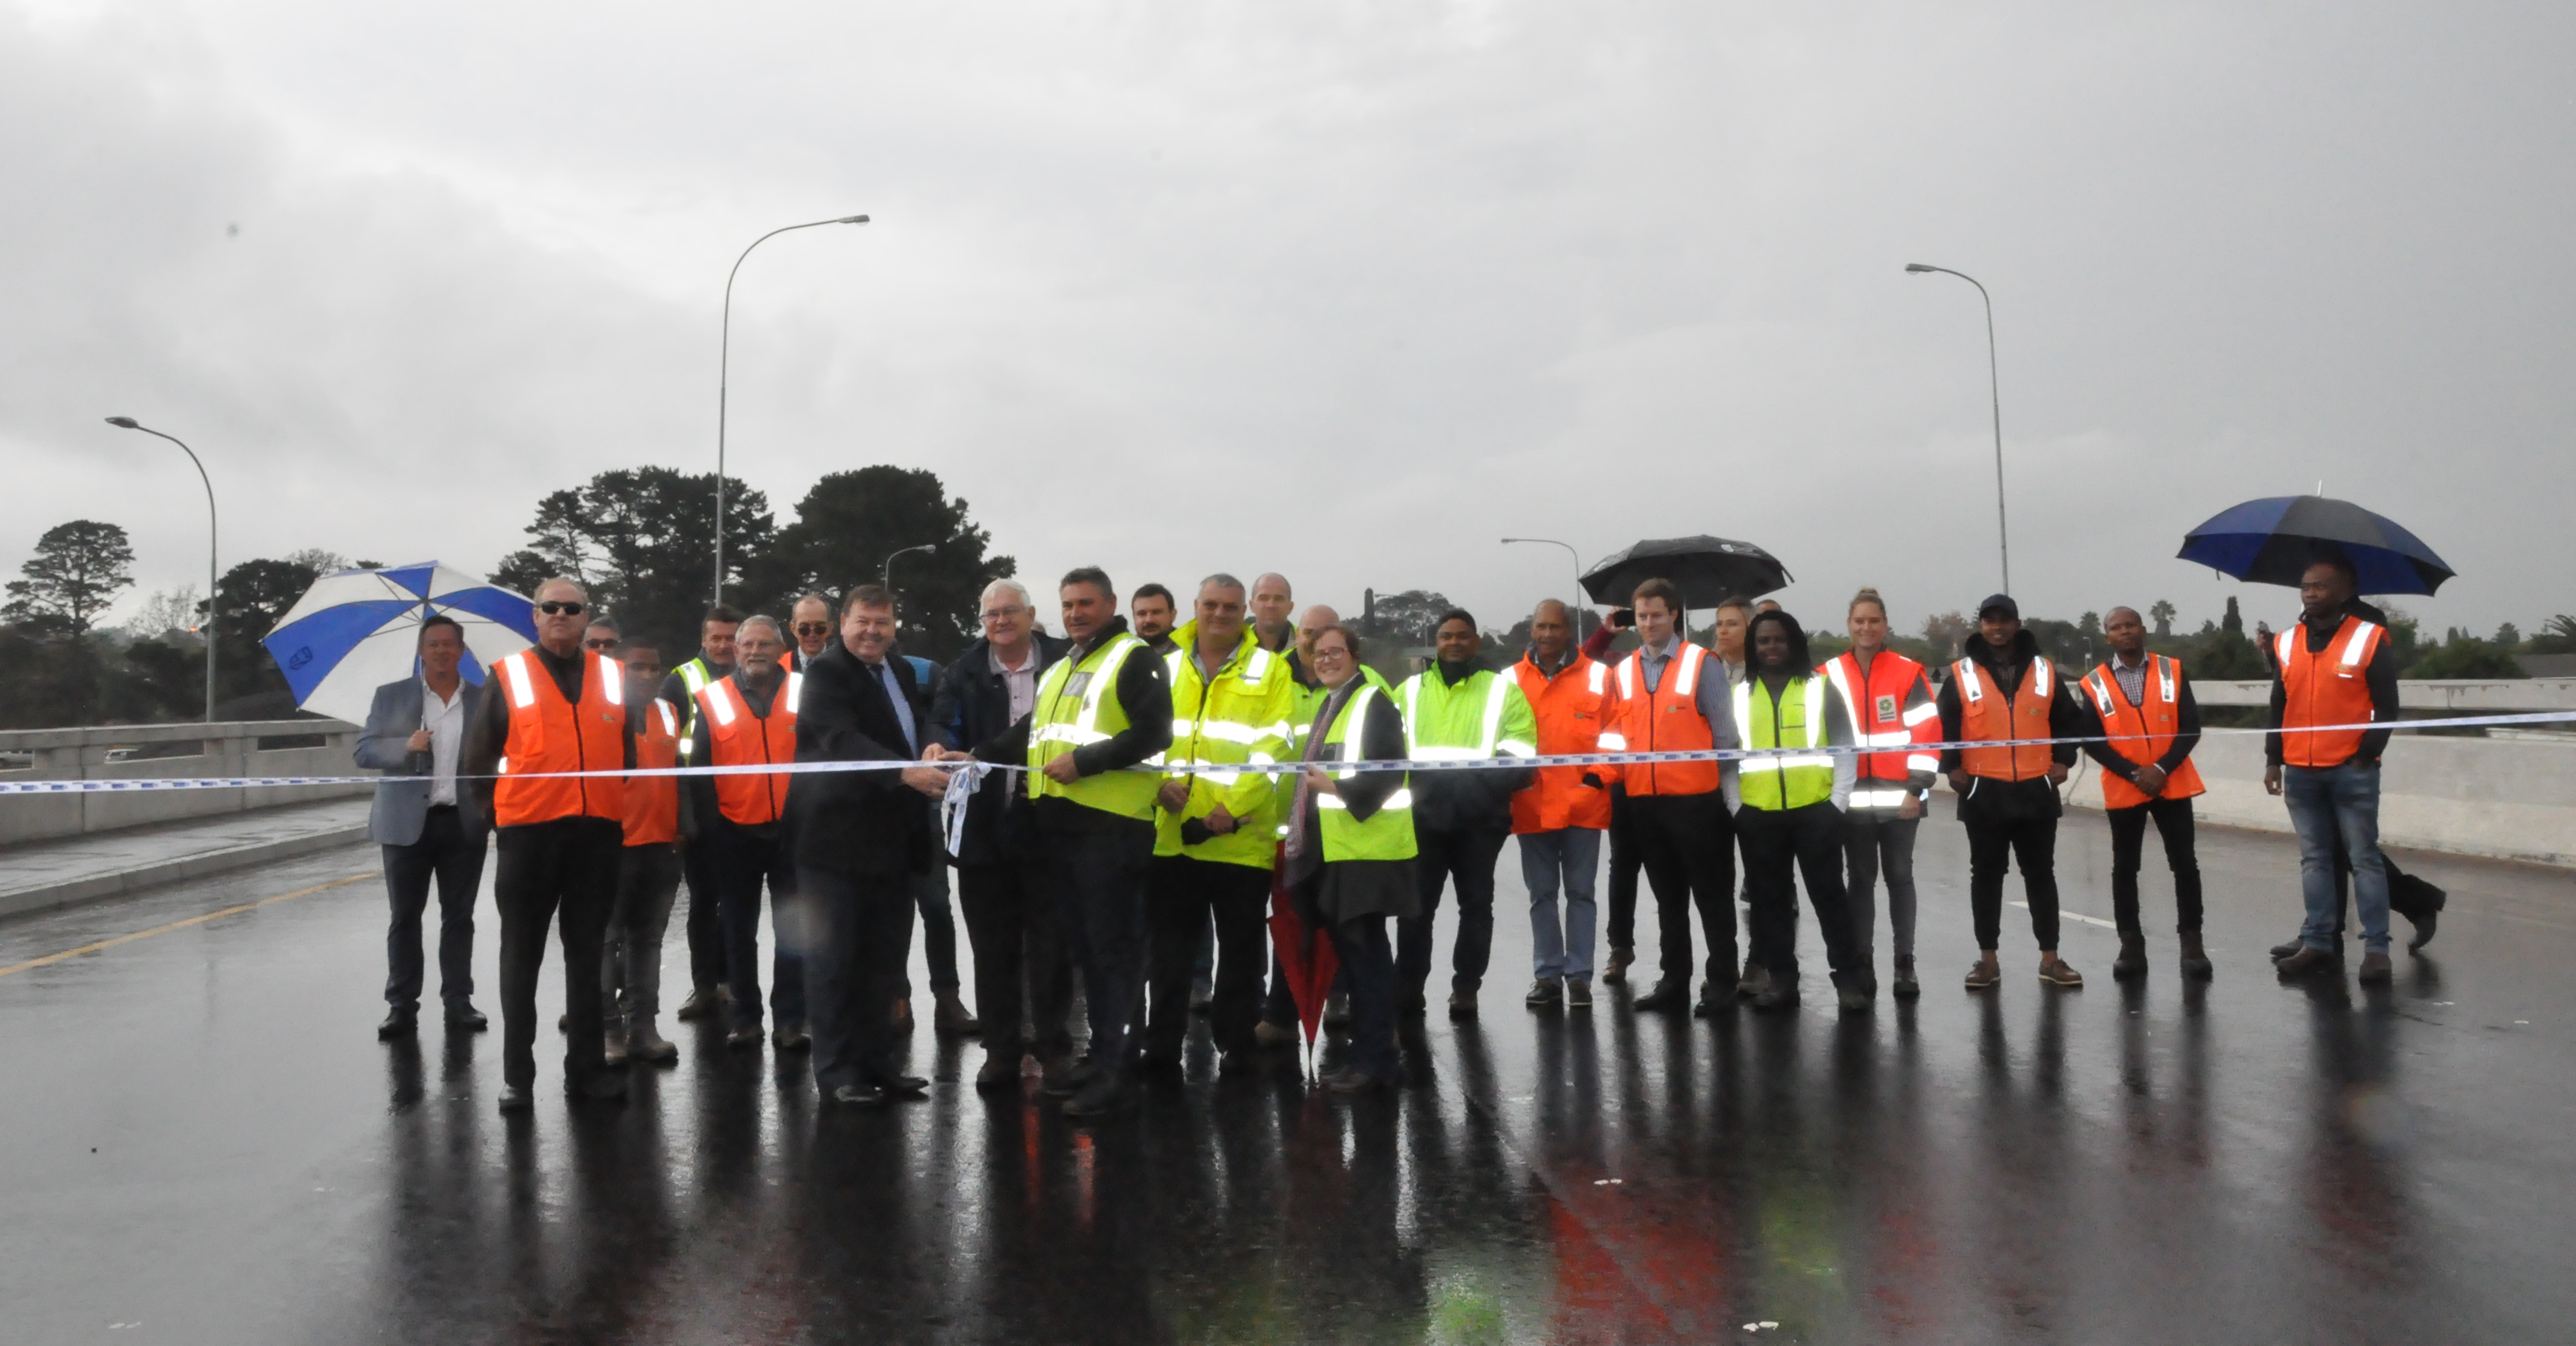 Minister Grant and officials of the department as well as members of the project team, at the official ribbon-cutting ceremony on the new Old Oak Bridge.